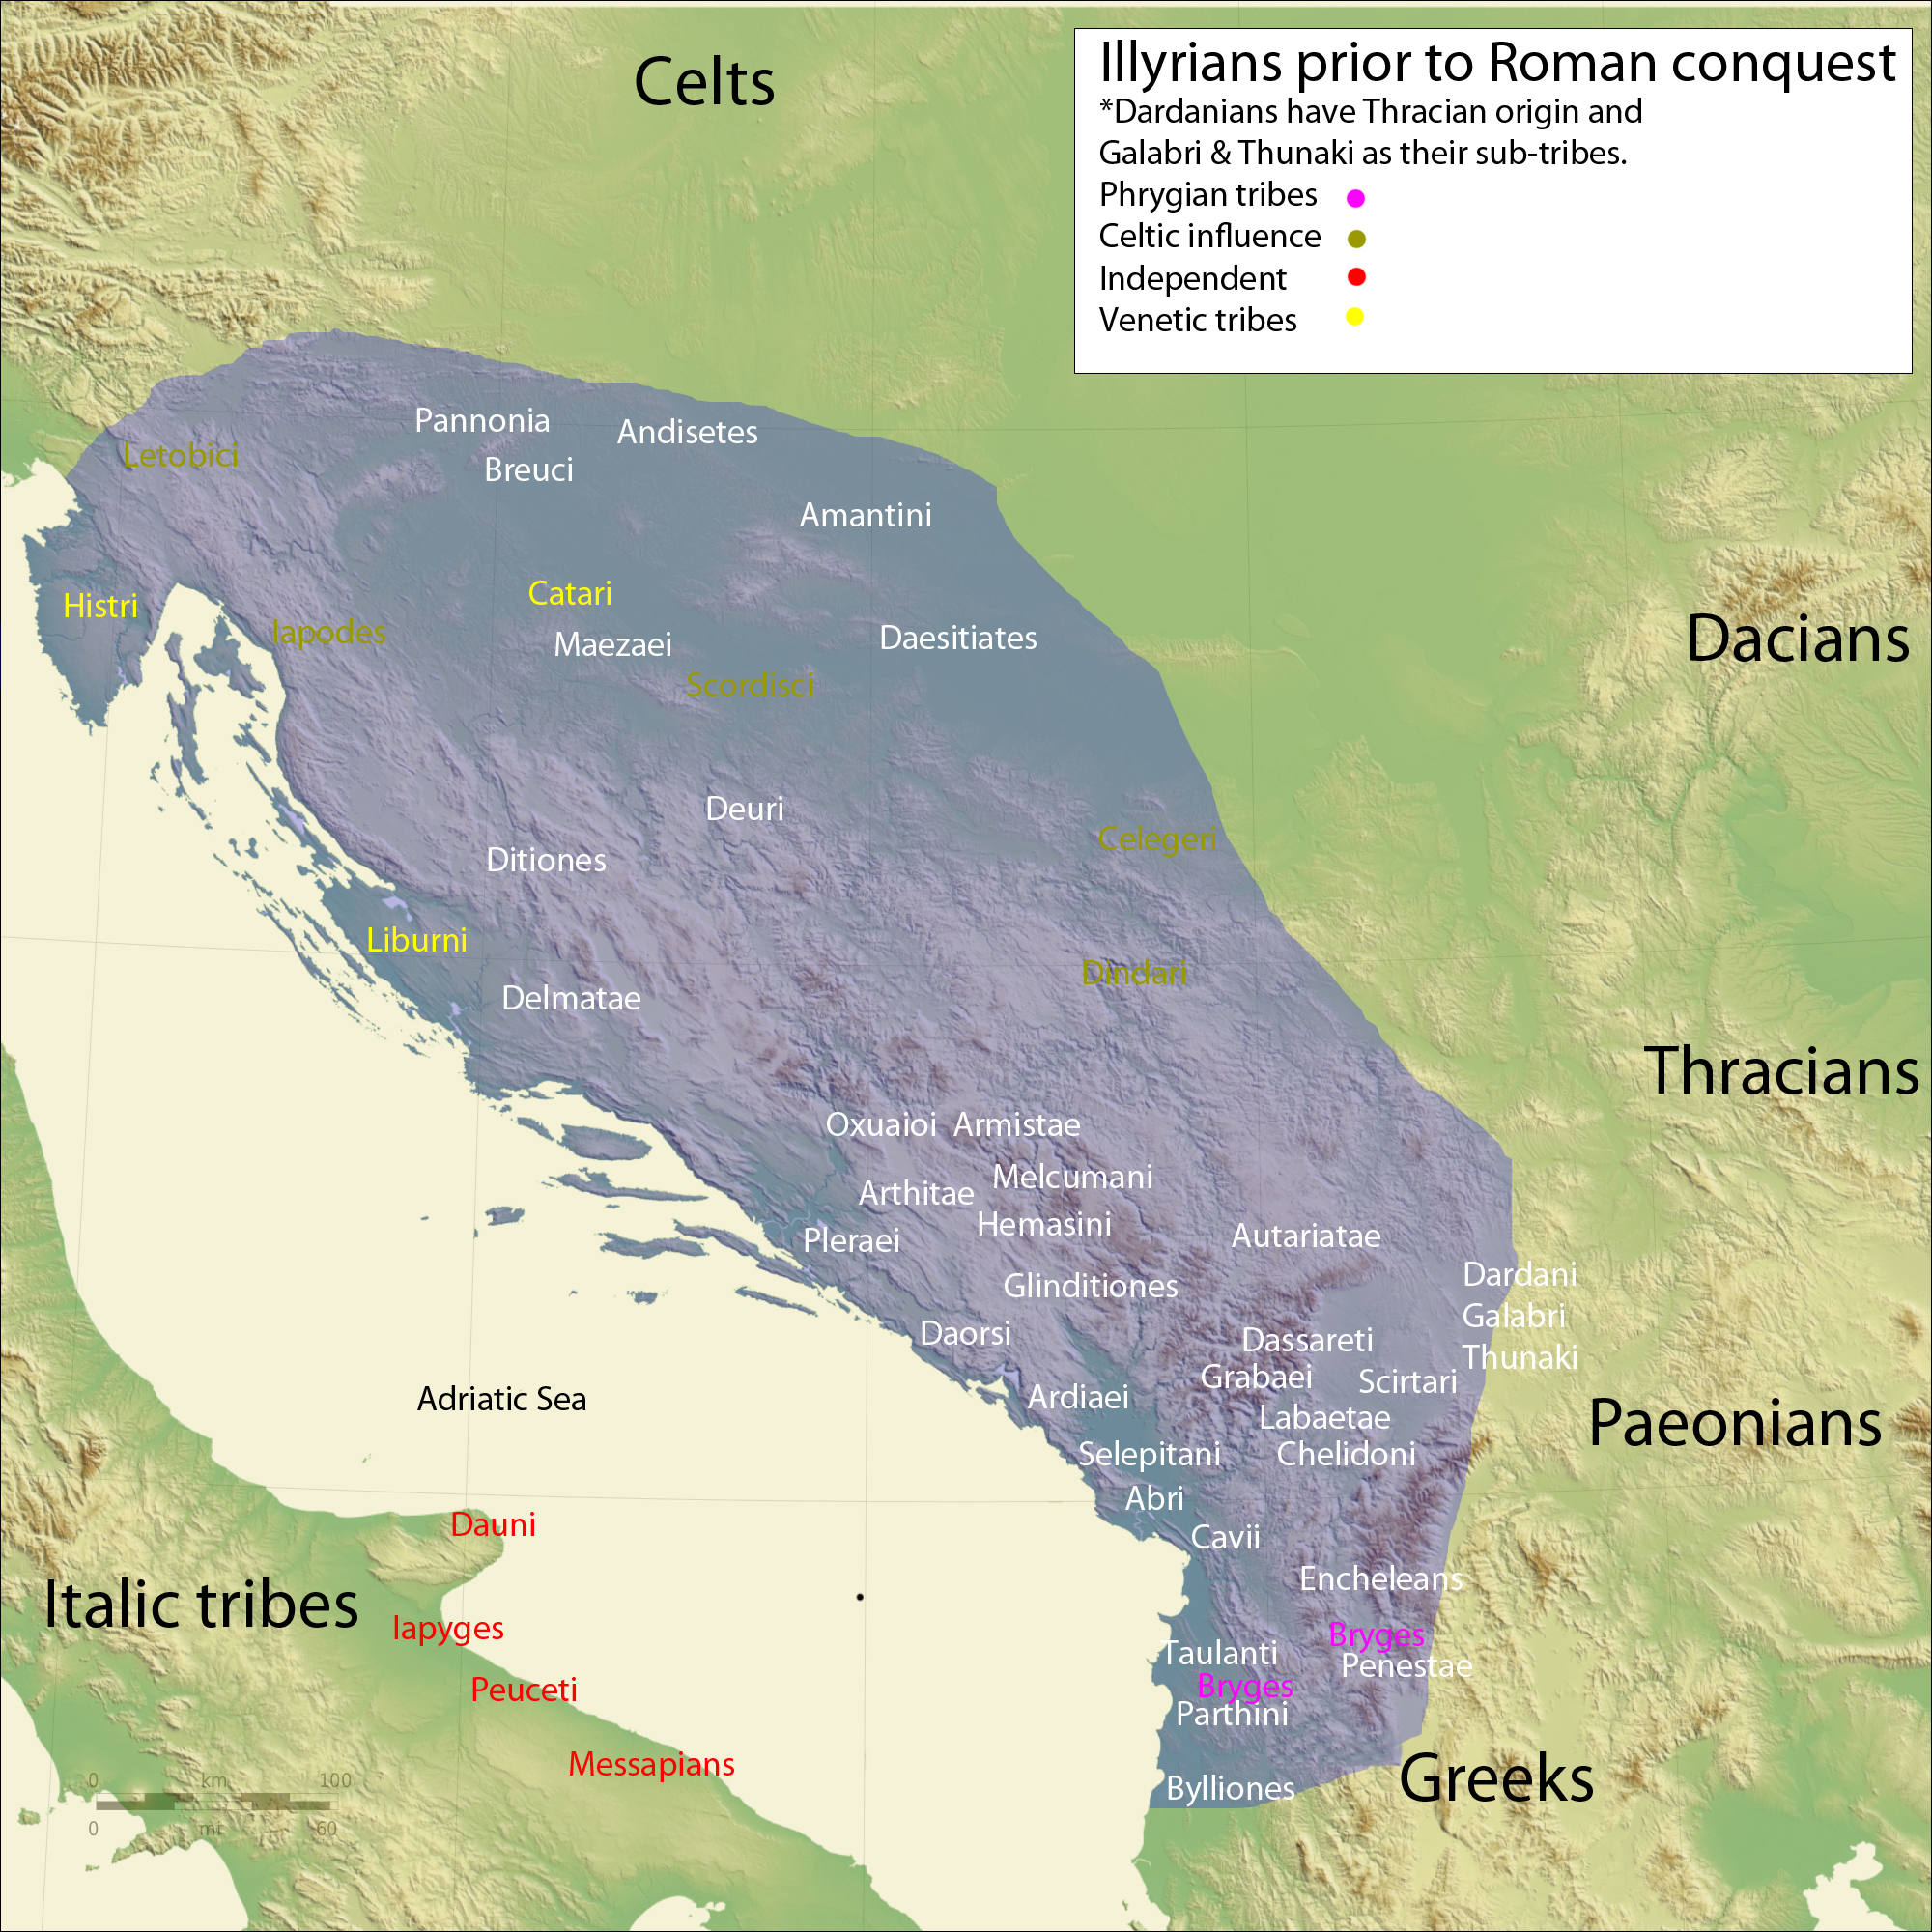 Atlas Of The Antiquity Wikimedia Commons - Map of egypt greece and rome